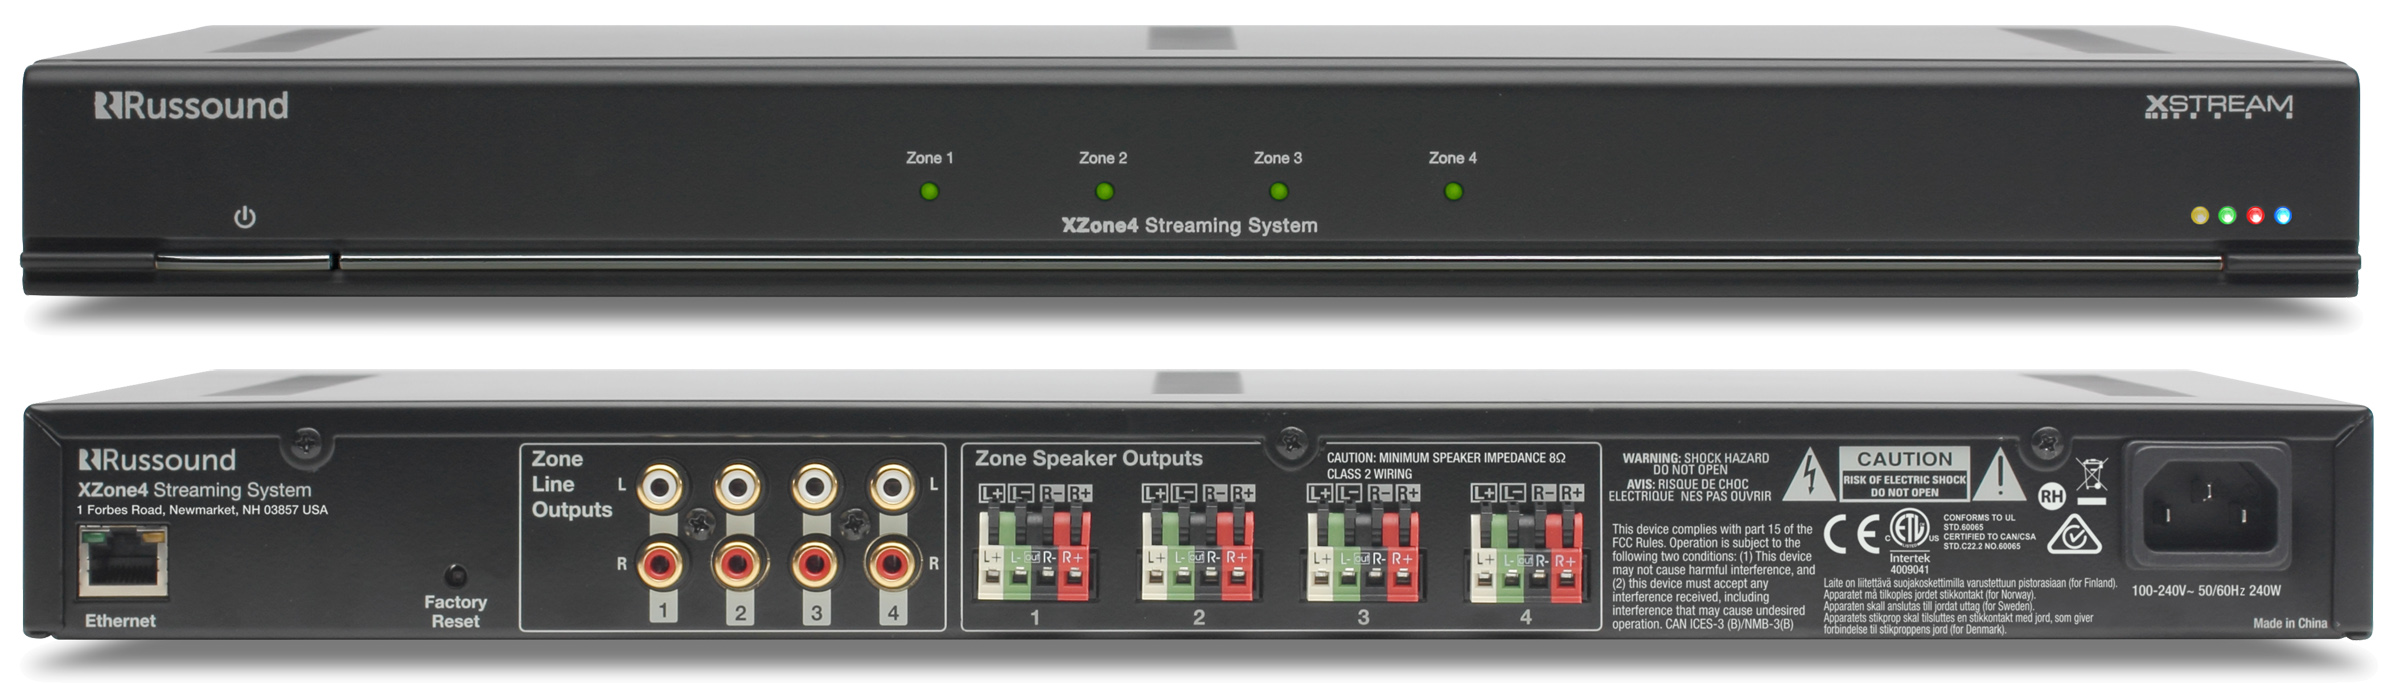 """The Xstream product is backward compatible with their legacy C-Series  systems, so doing an """"upgrade"""" is more of an """"addition"""" and costs less."""